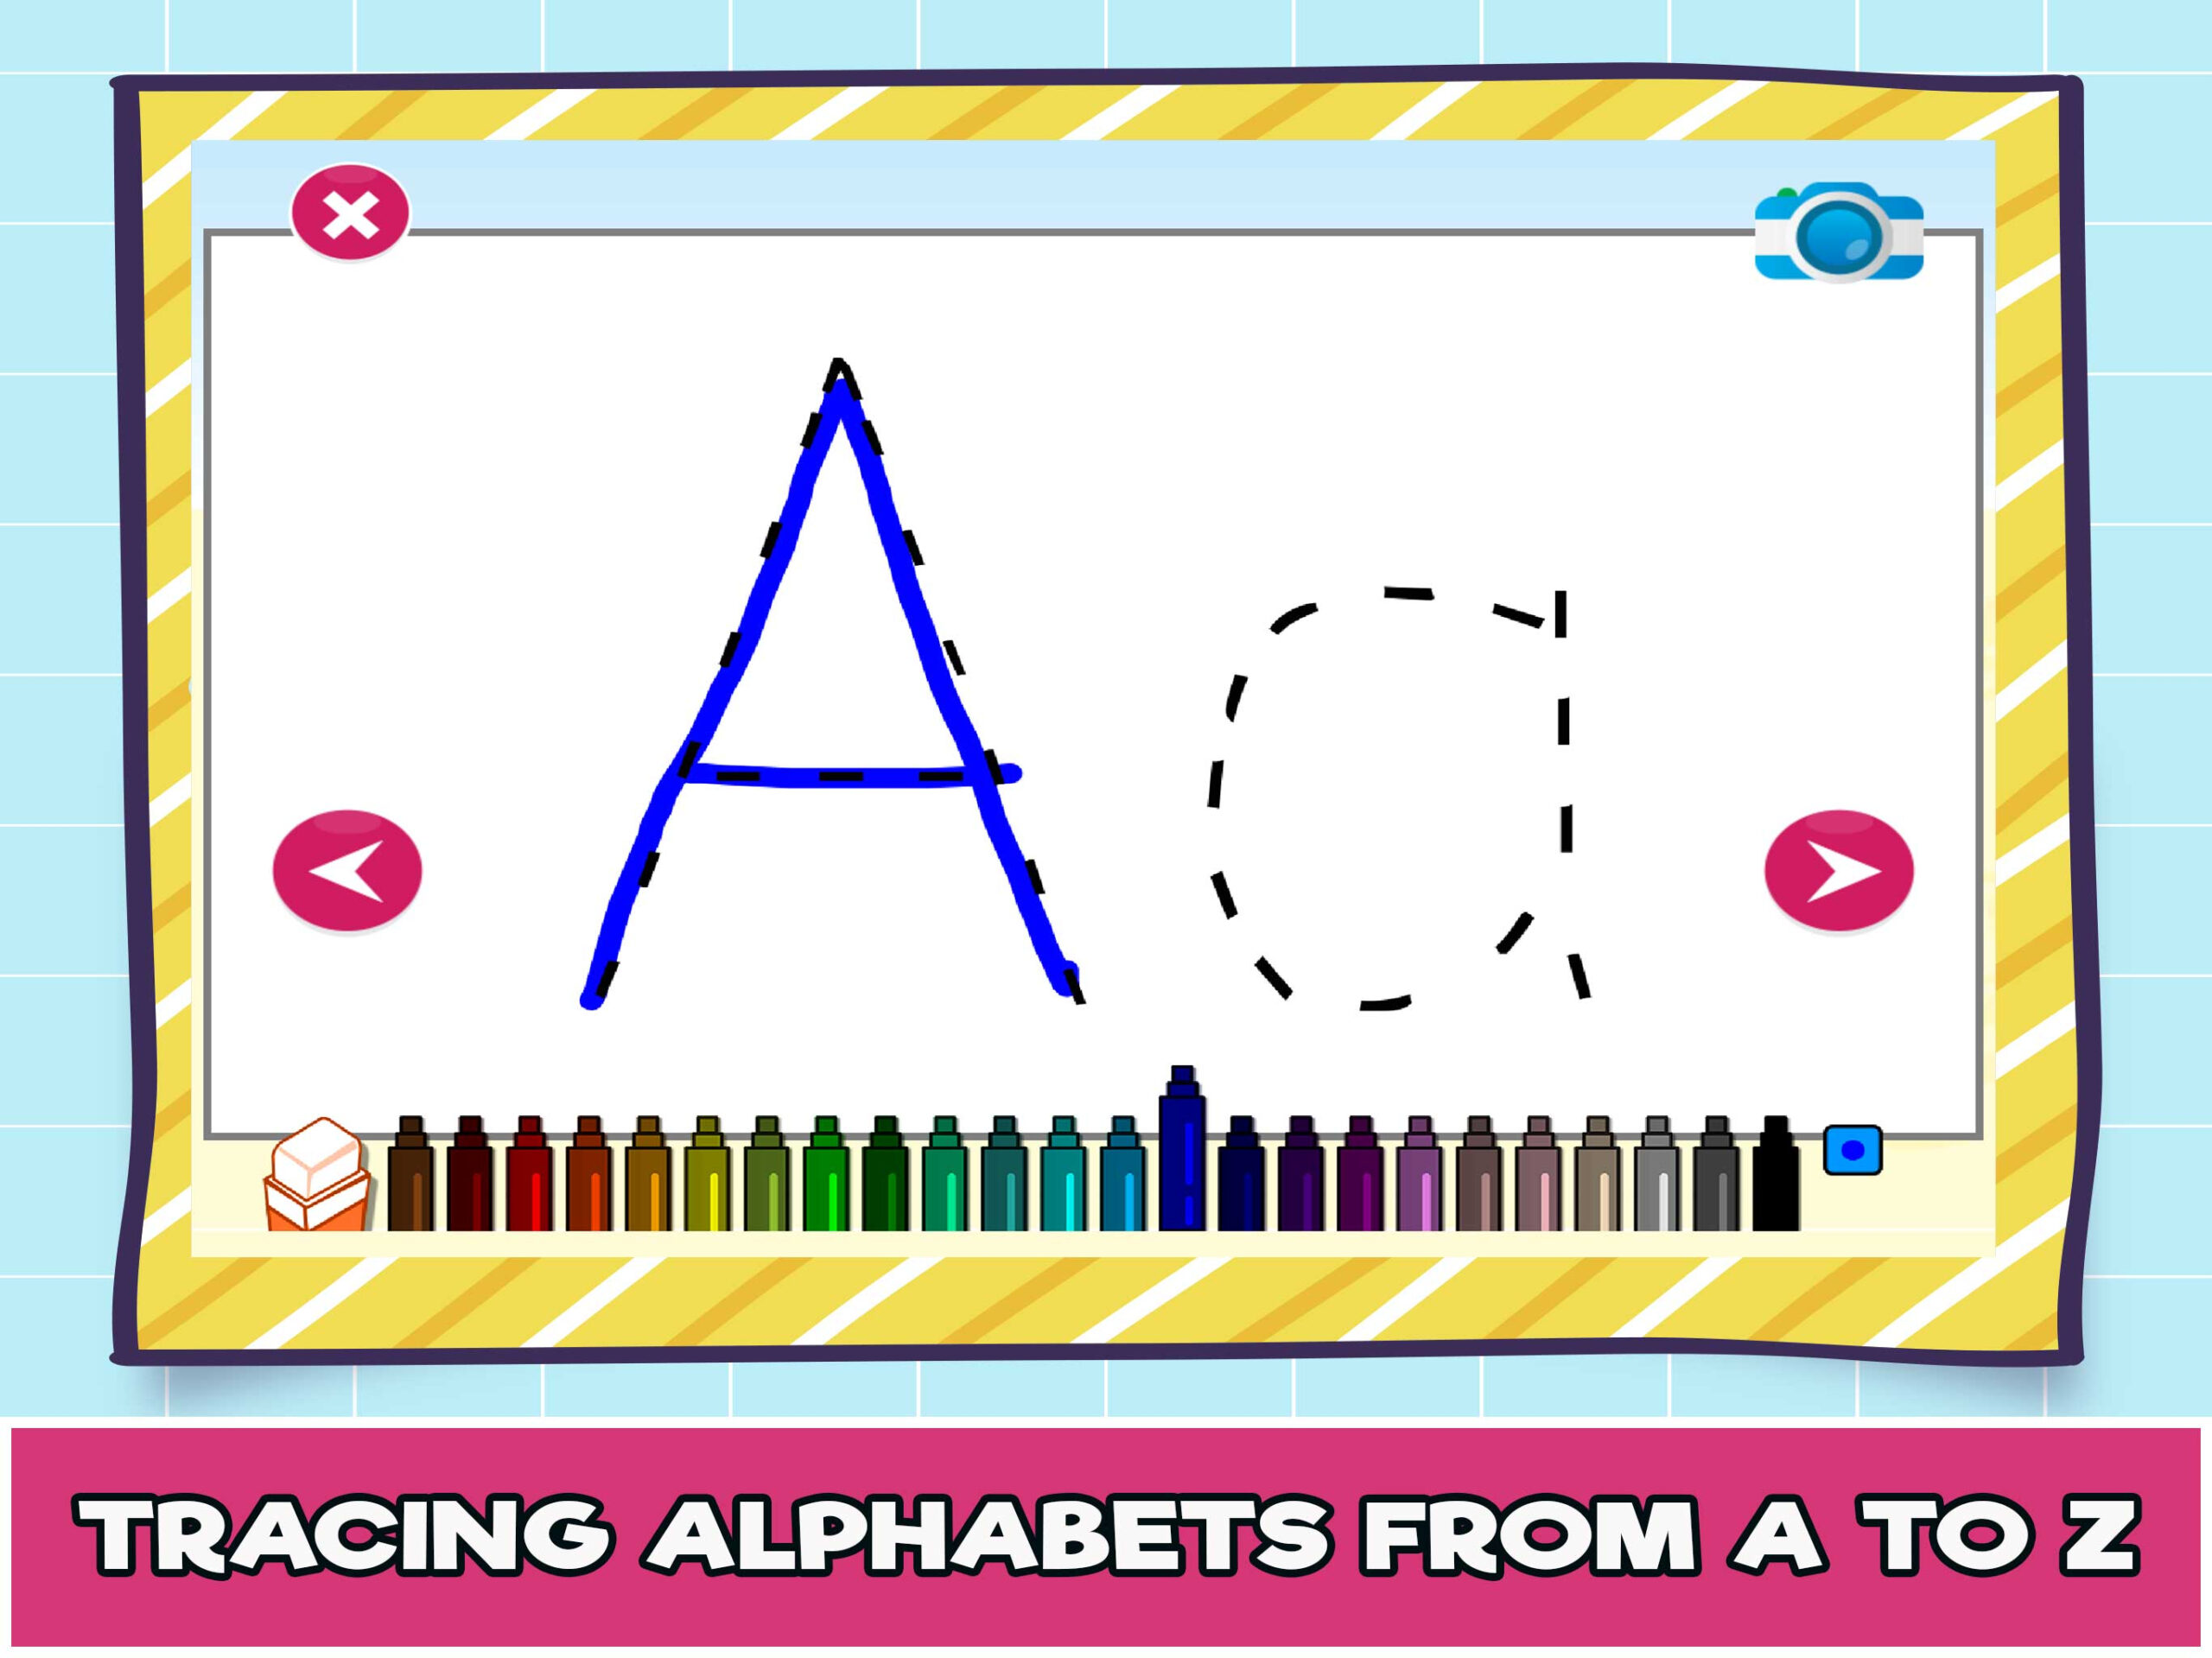 Free Online Alphabet Tracing Game For Kids - The Learning Apps inside Letter Tracing Ipad App